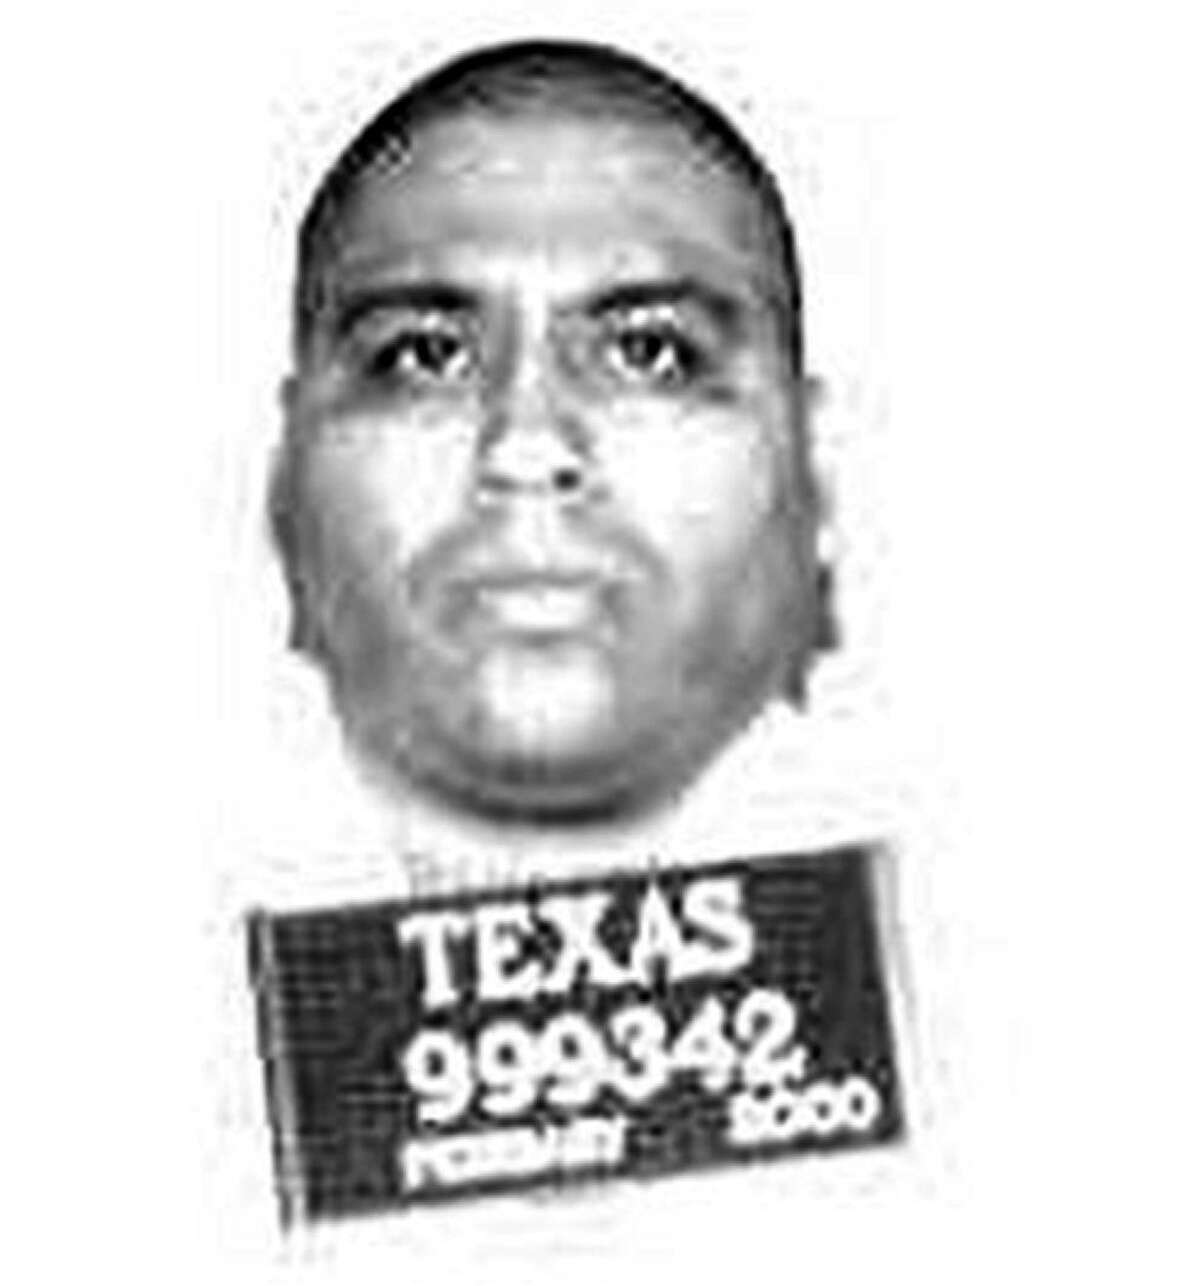 Ramiro Hernandez was convicted of killing a man and attacking his wife during an attempted robbery of their ranch.